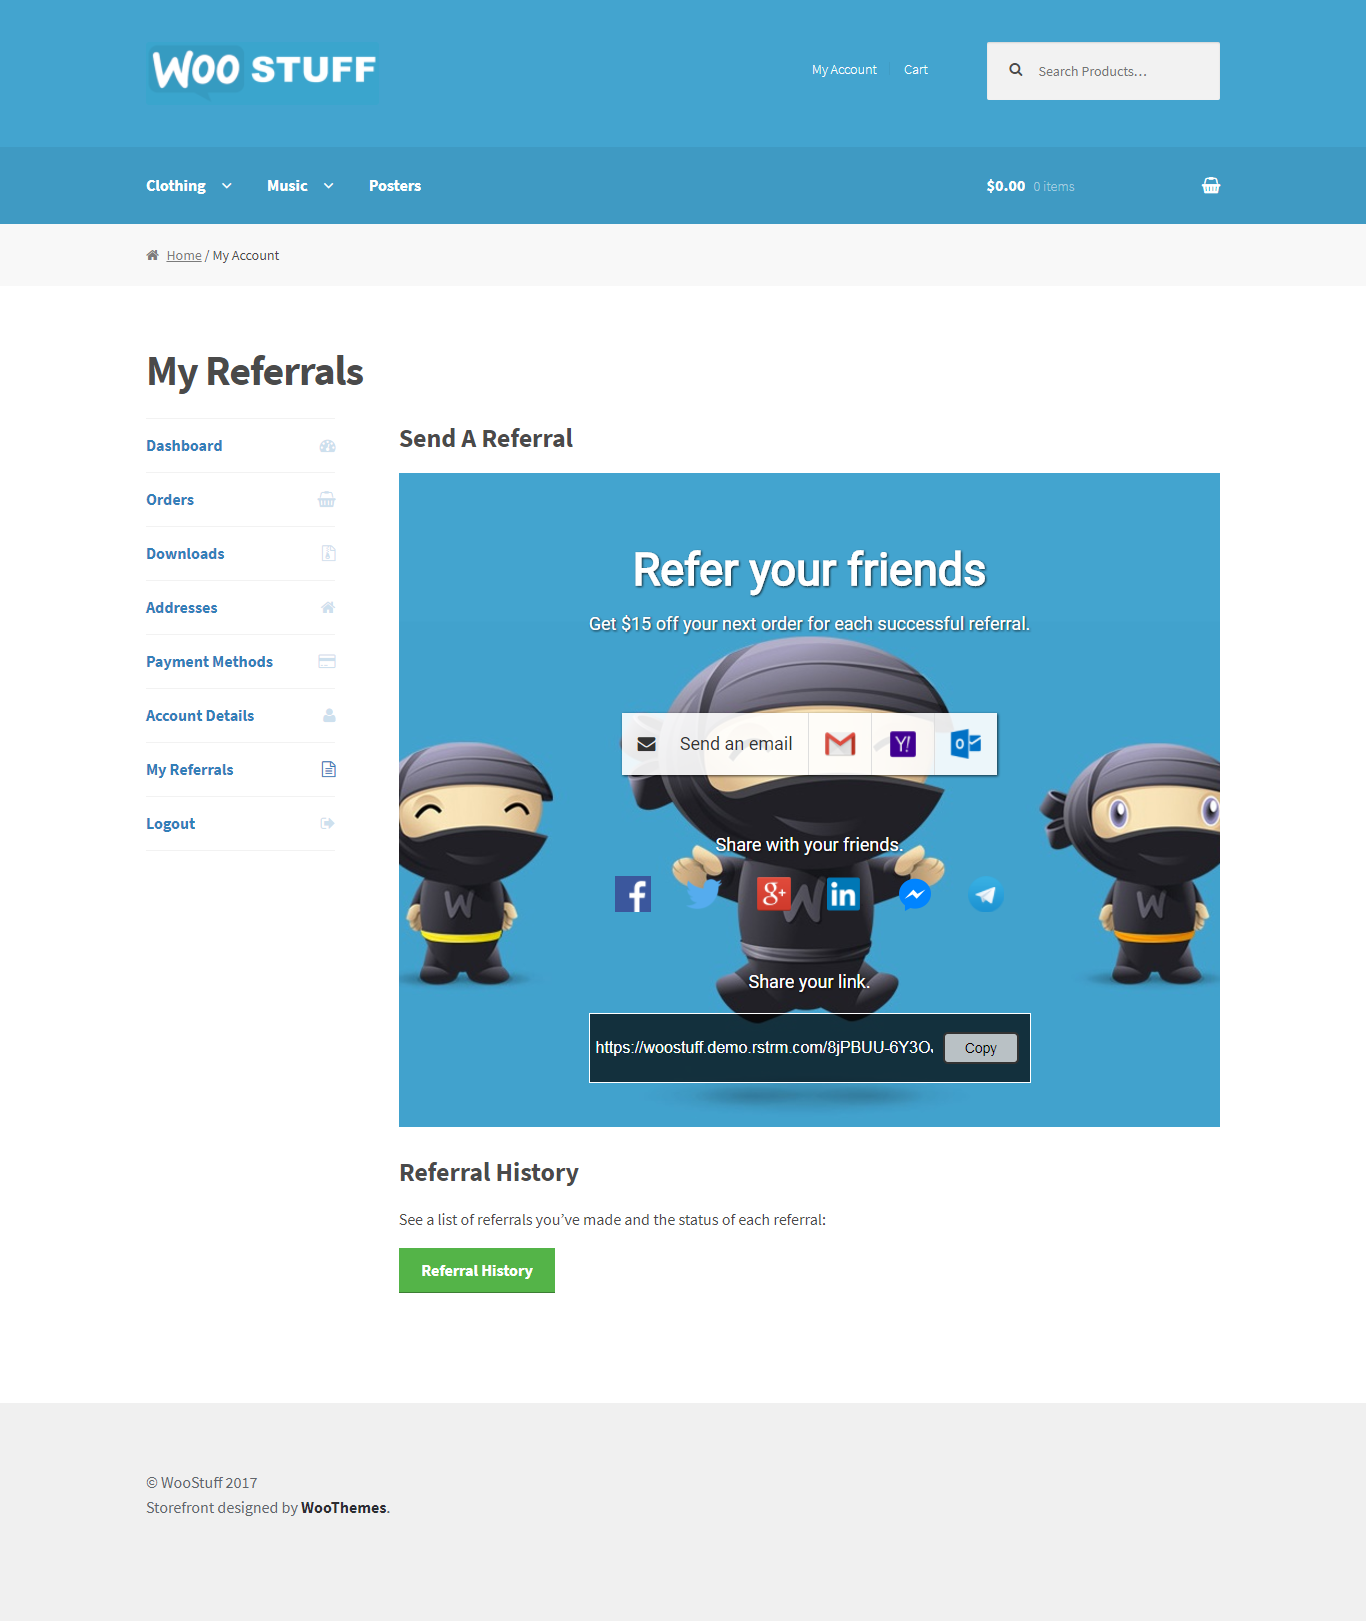 refer-a-friend-by-rewardstream screenshot 2